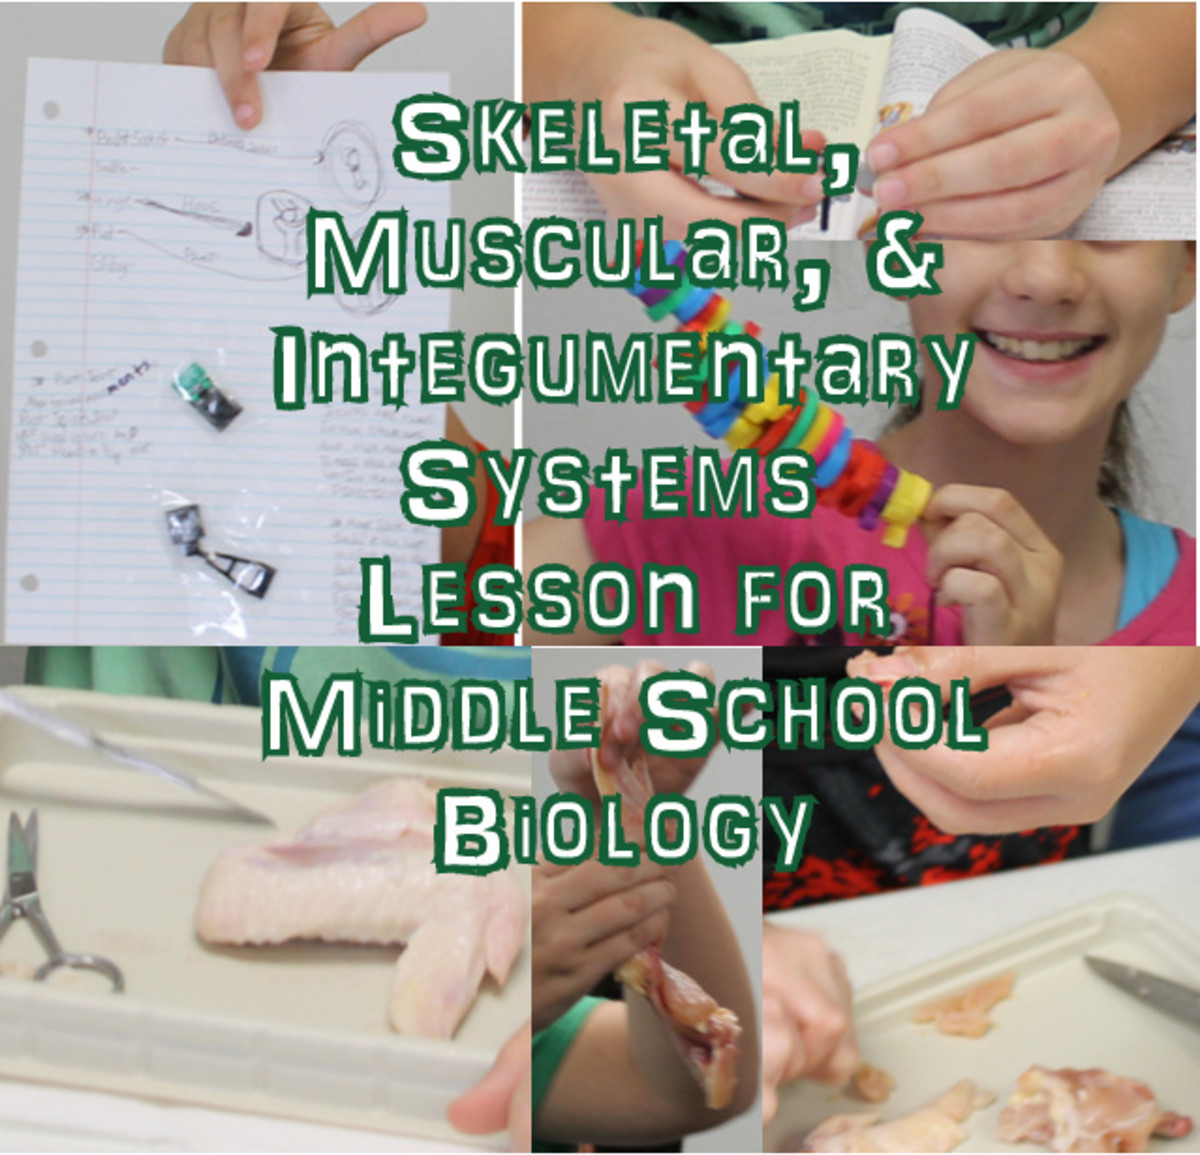 Skeletal, Muscular, & Integumentary Systems Lesson for Middle School Biology